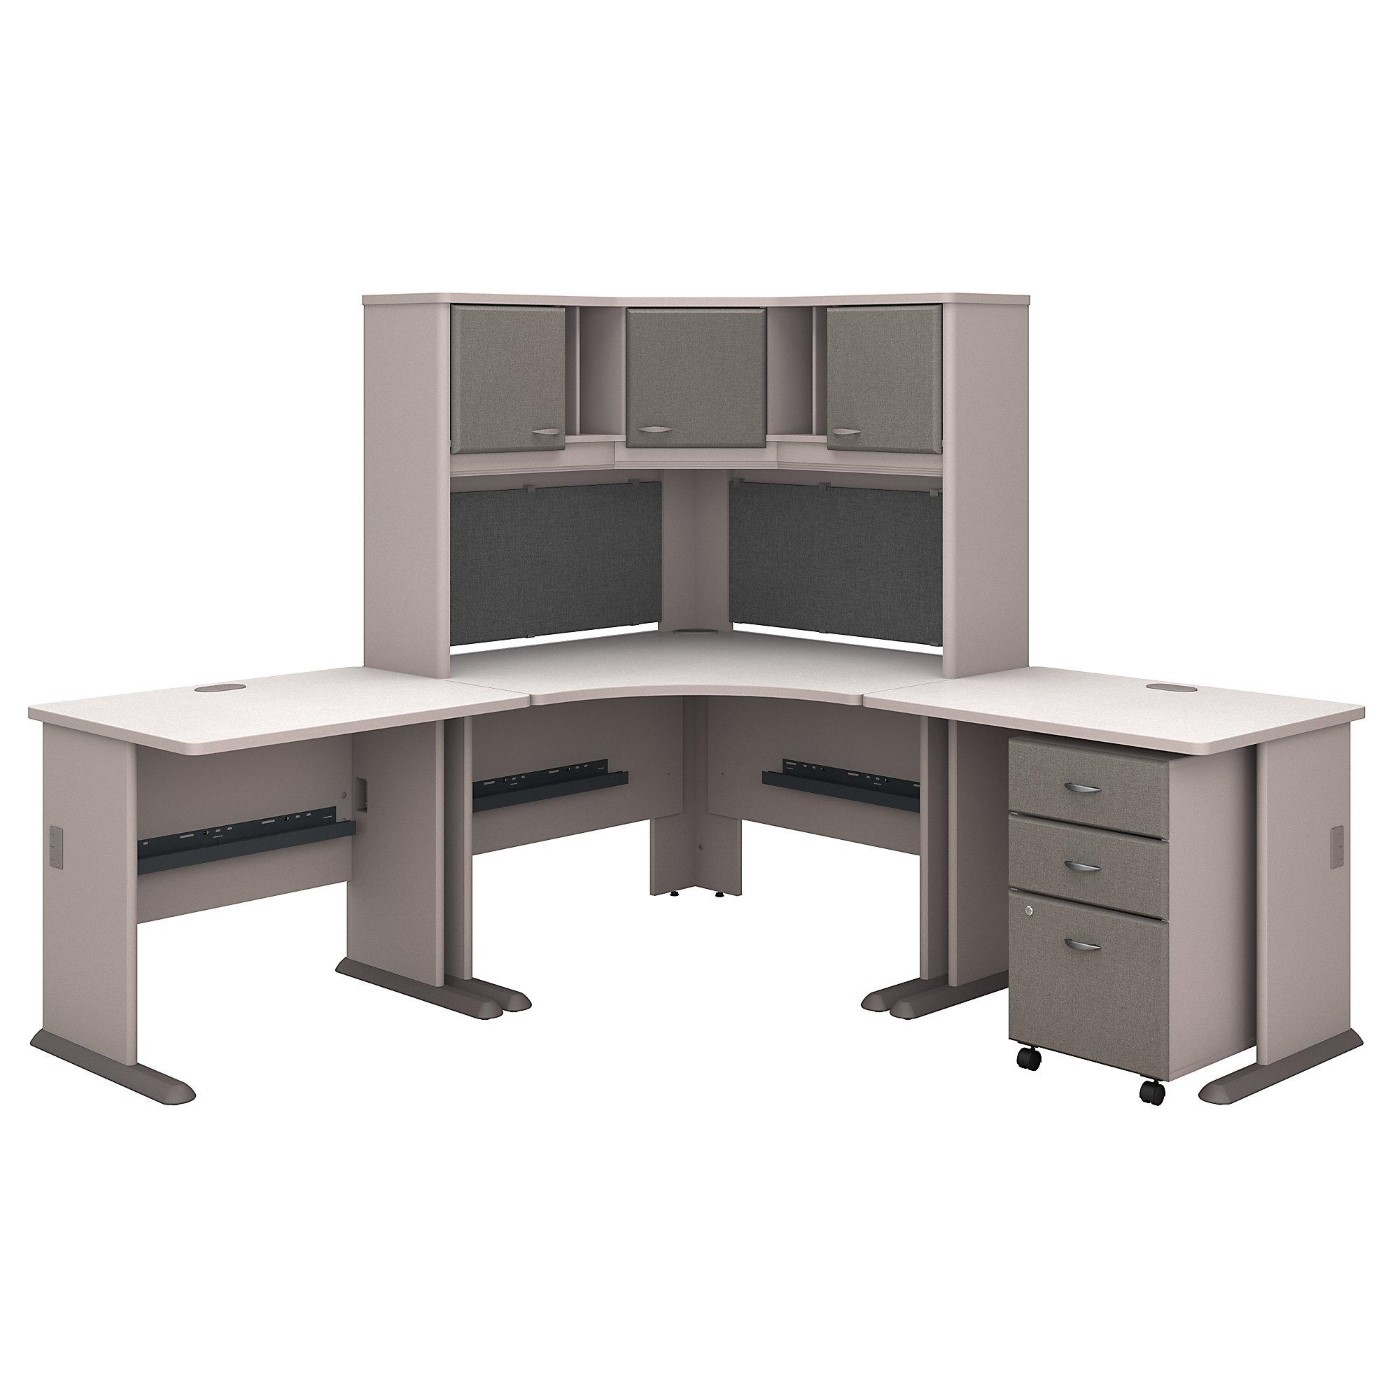 </b></font><b>BUSH BUSINESS FURNITURE SERIES A 84W X 84D CORNER DESK WITH HUTCH AND MOBILE FILE CABINET. FREE SHIPPING</font>. </b></font></b>